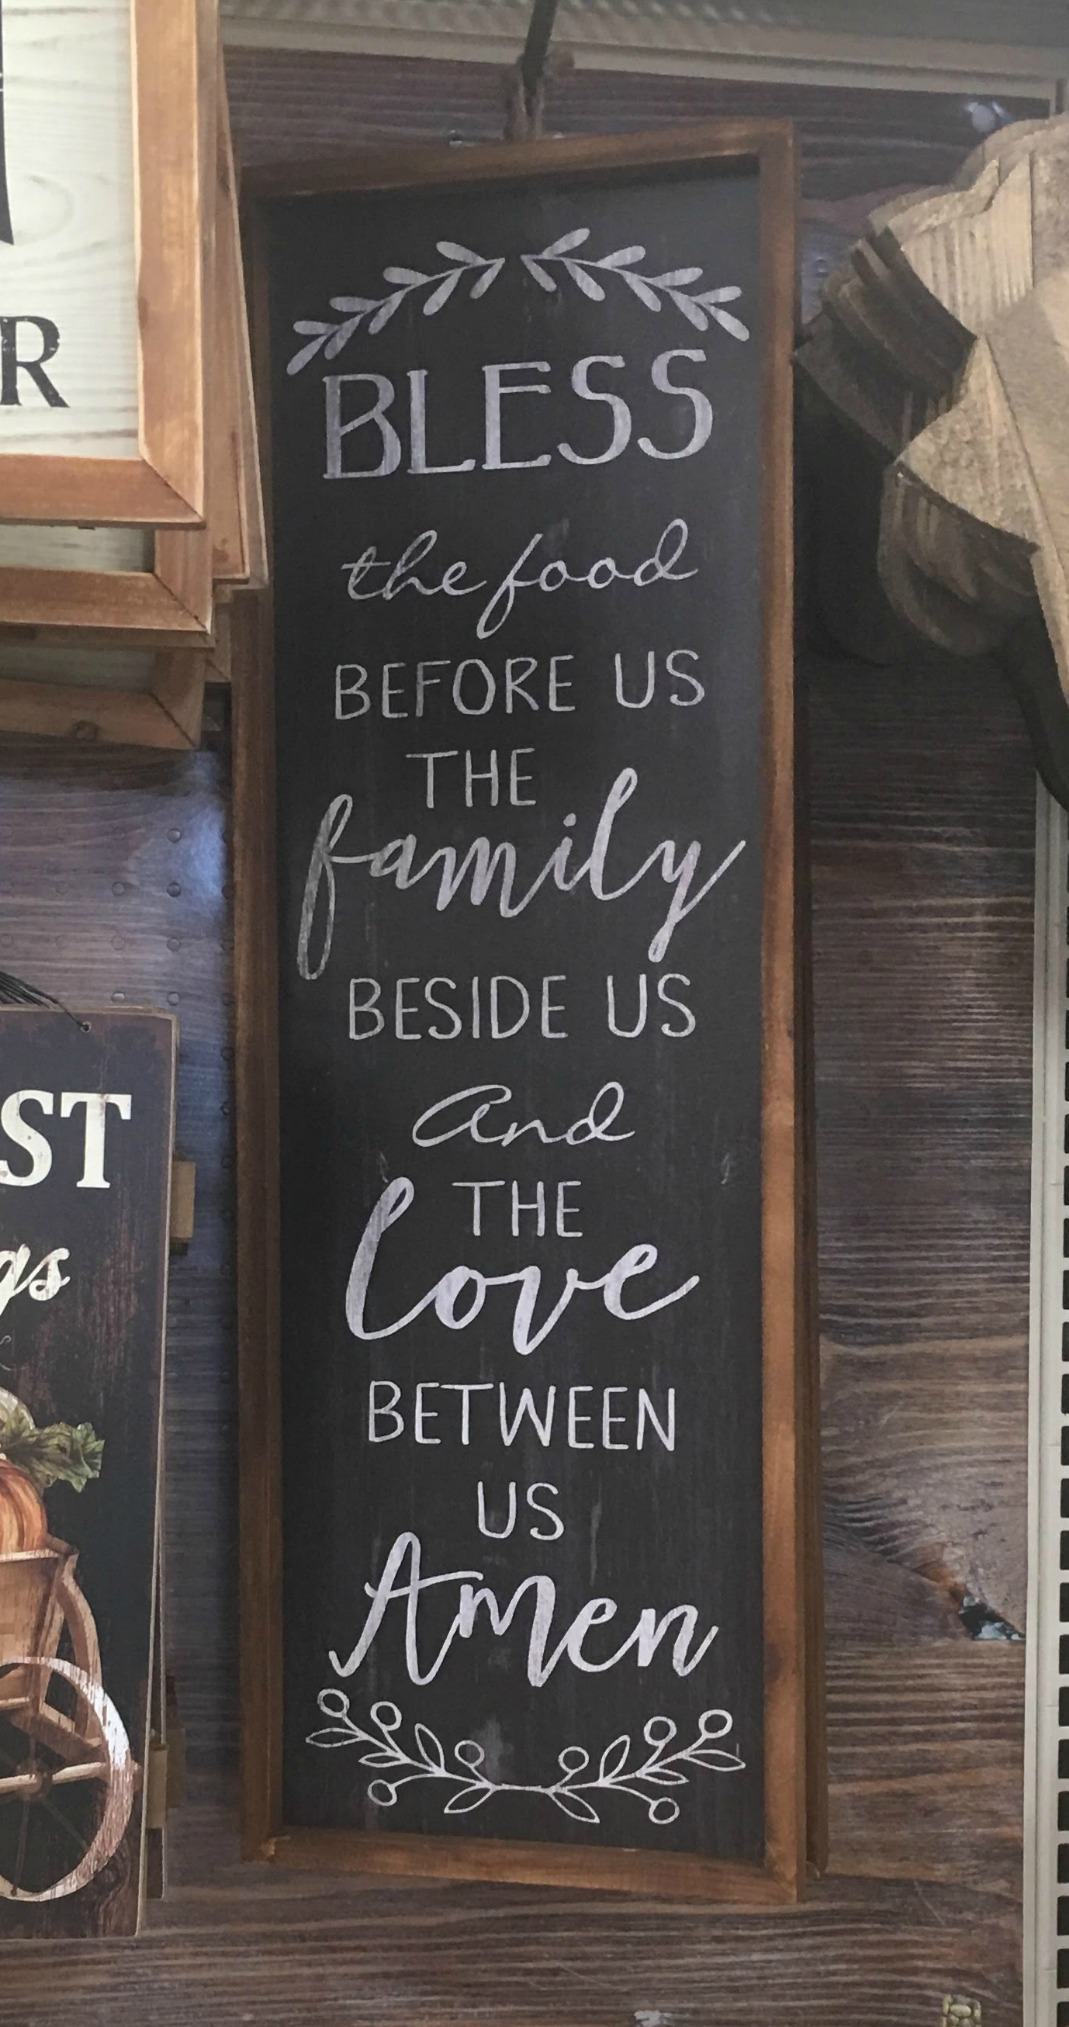 image relating to Bless the Food Before Us Printable titled Hand Lettered Wall Artwork Cost-free Printable - Amy Latta Creations